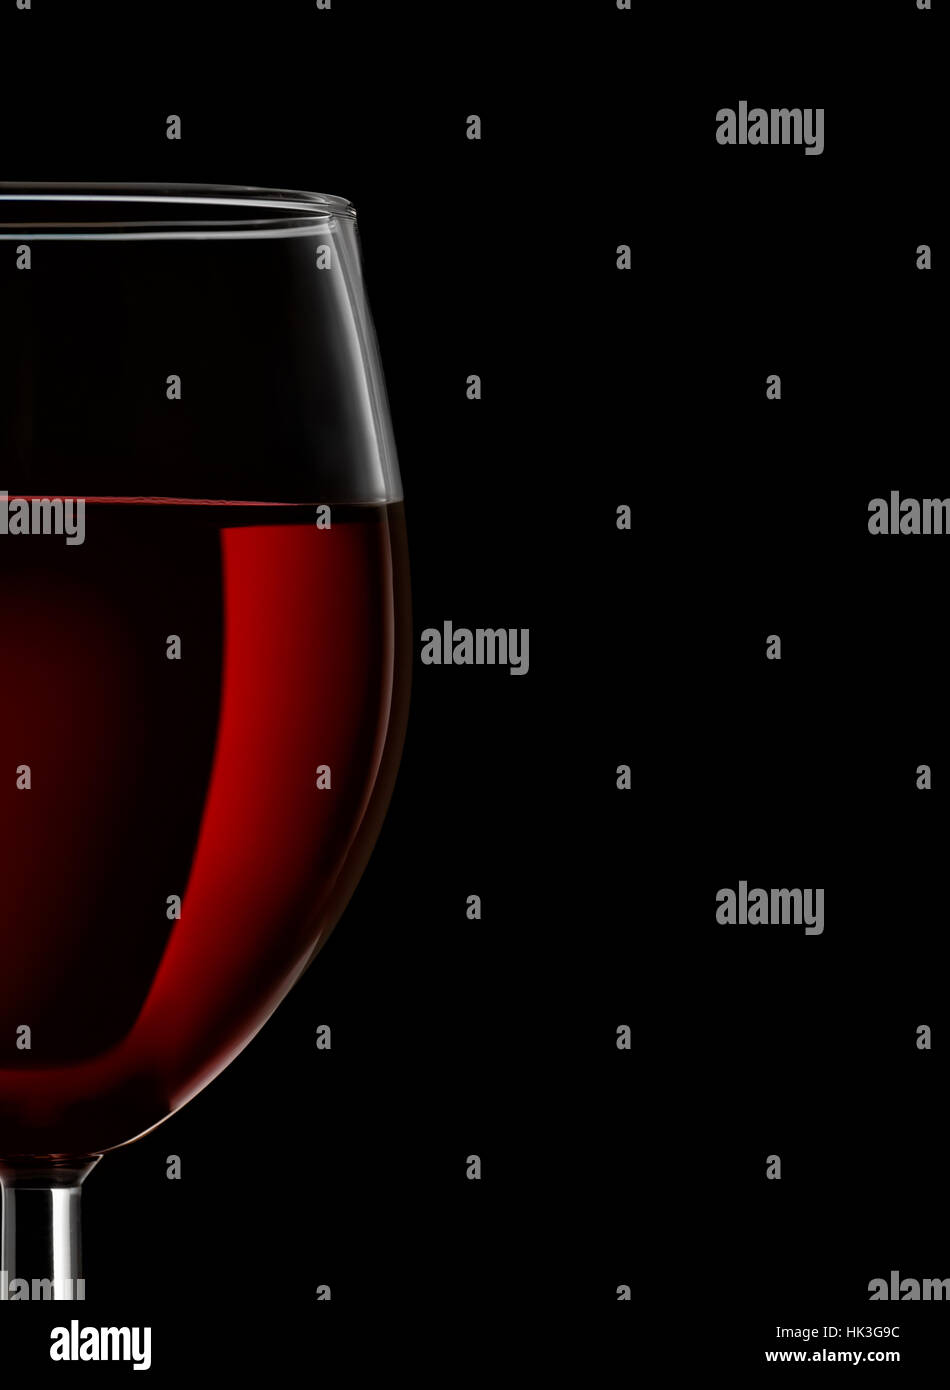 Close up of red wine glass on black background - Stock Image